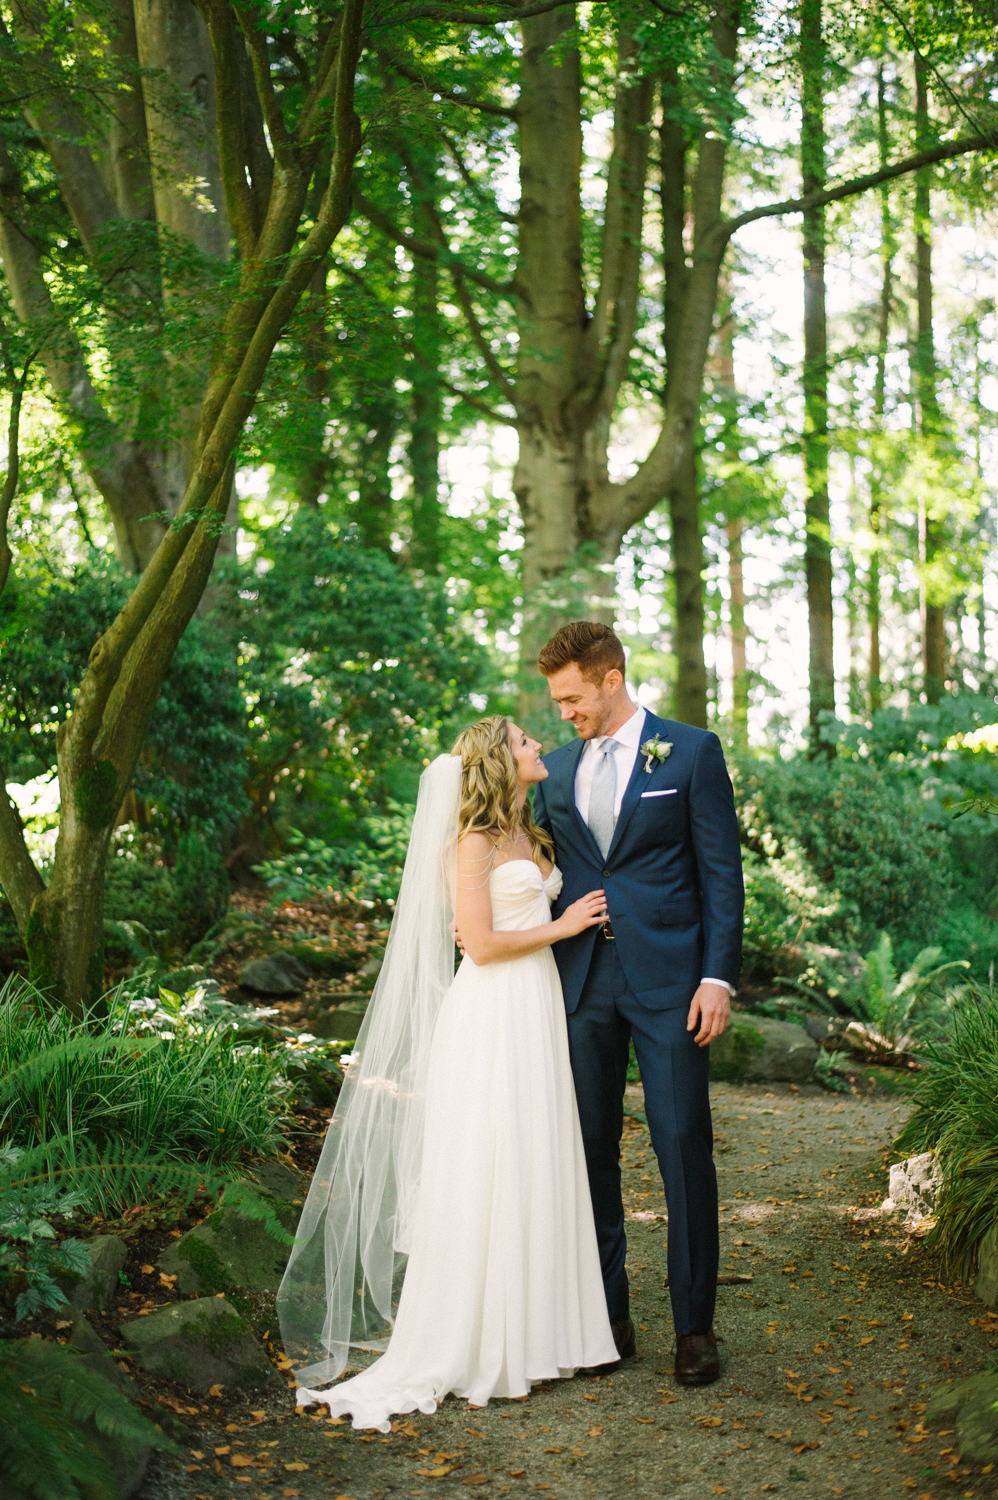 Stanely Park Wedding, Vancouver BC-Jessika Hunter-4.JPG